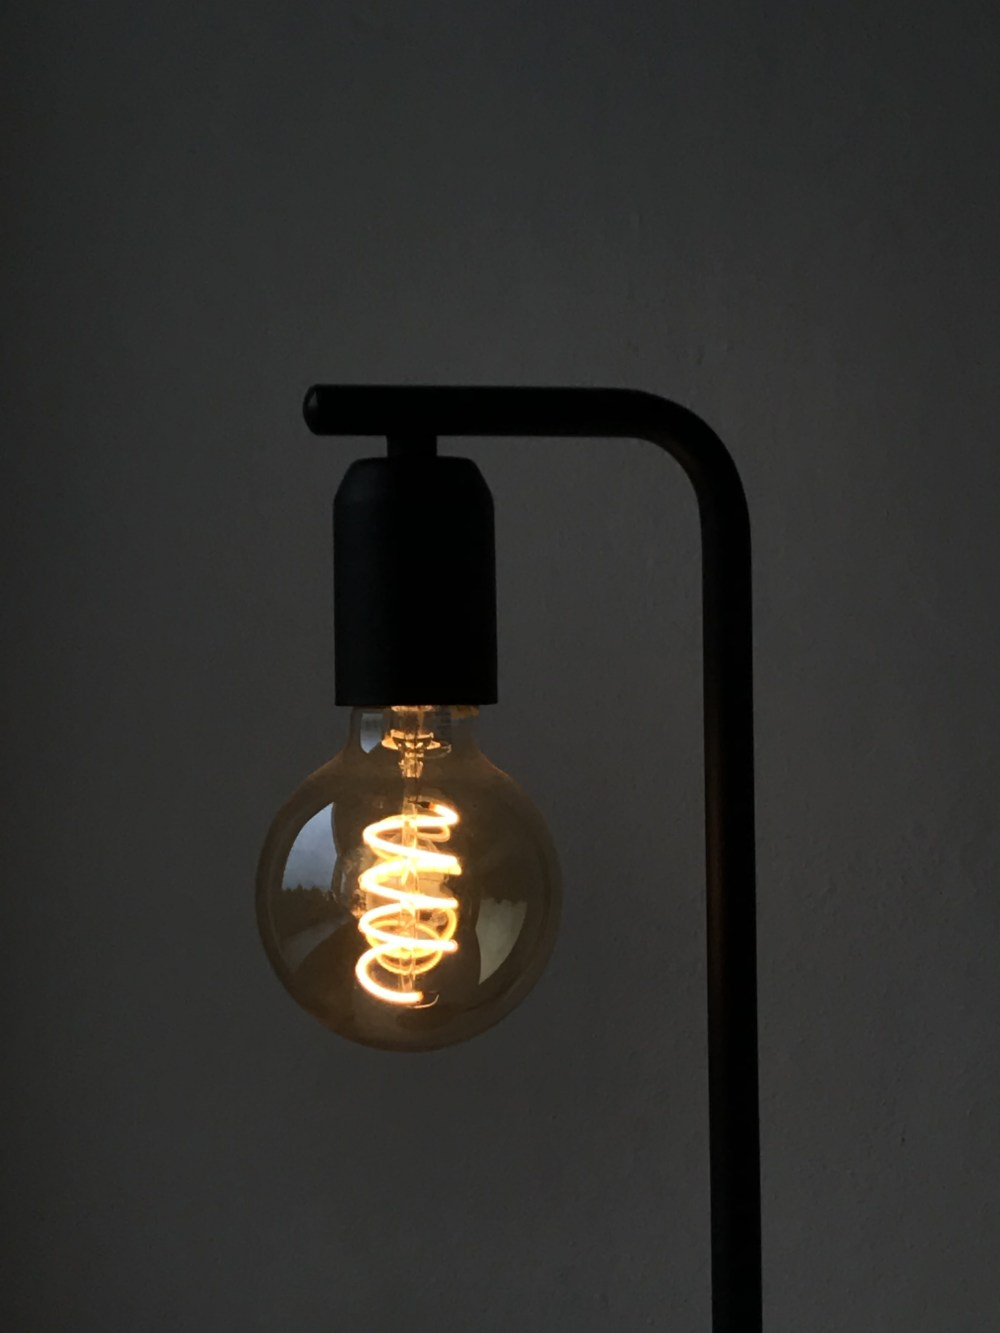 lamp light pictures download free